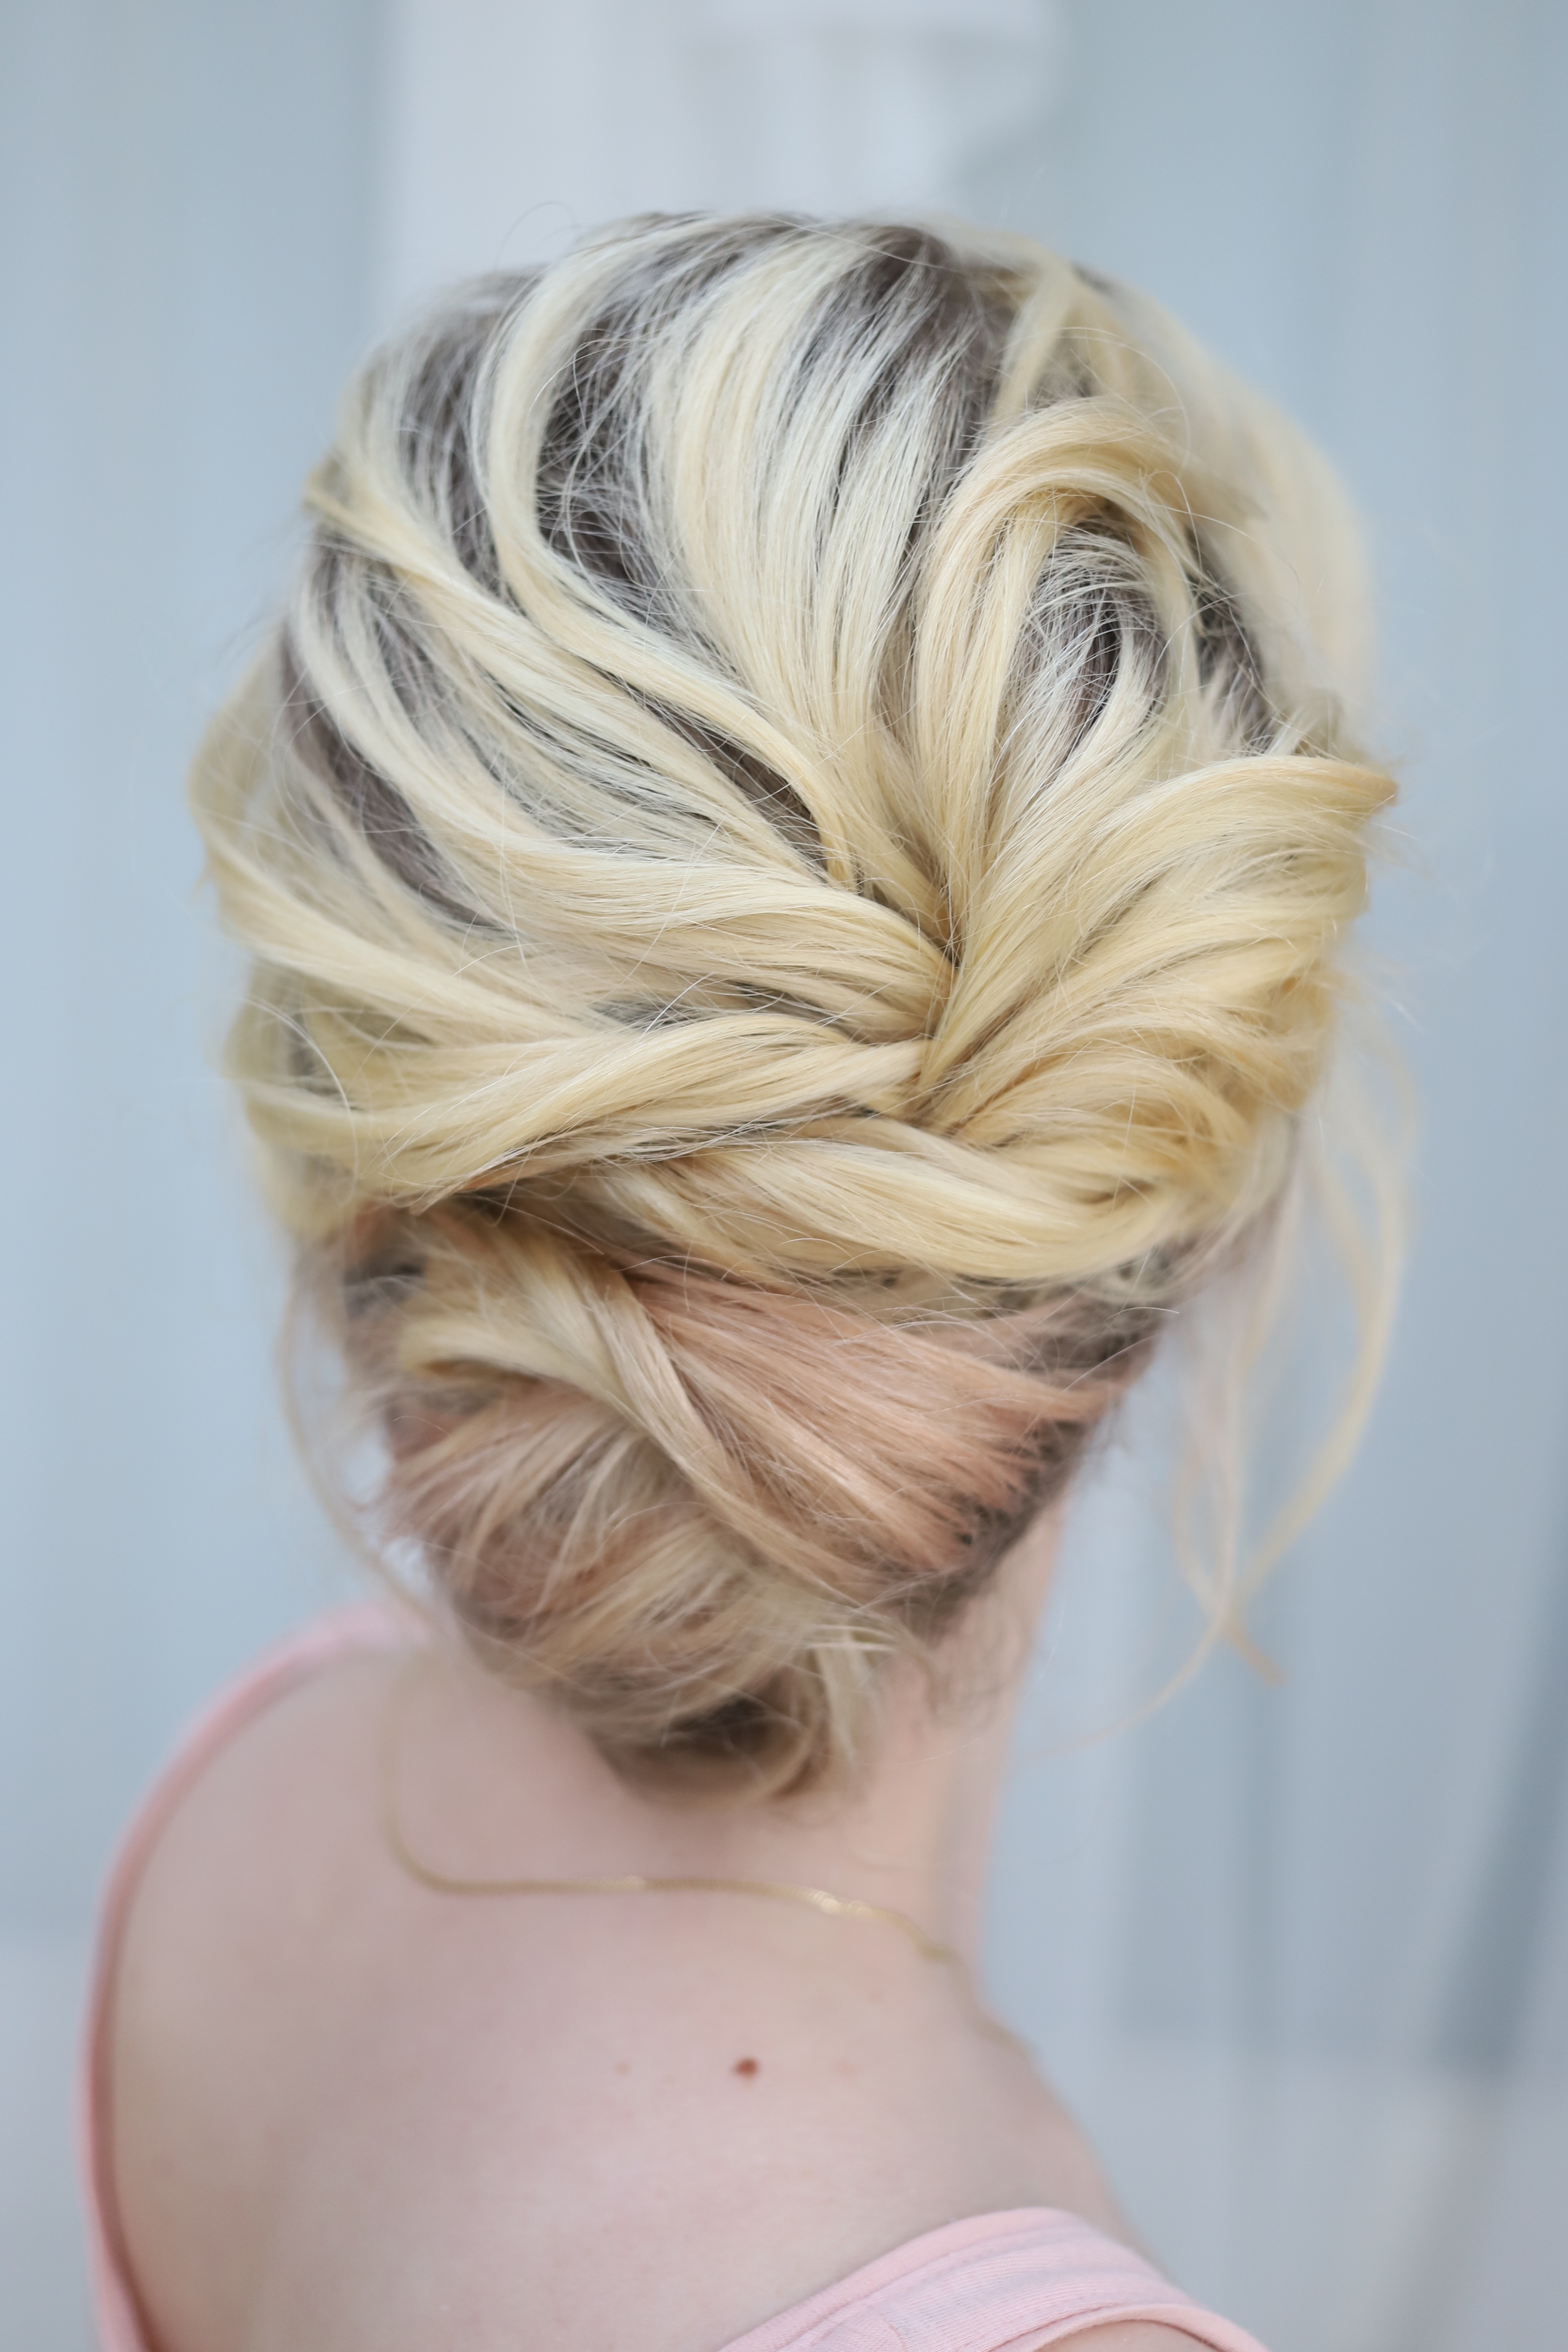 Texured updo